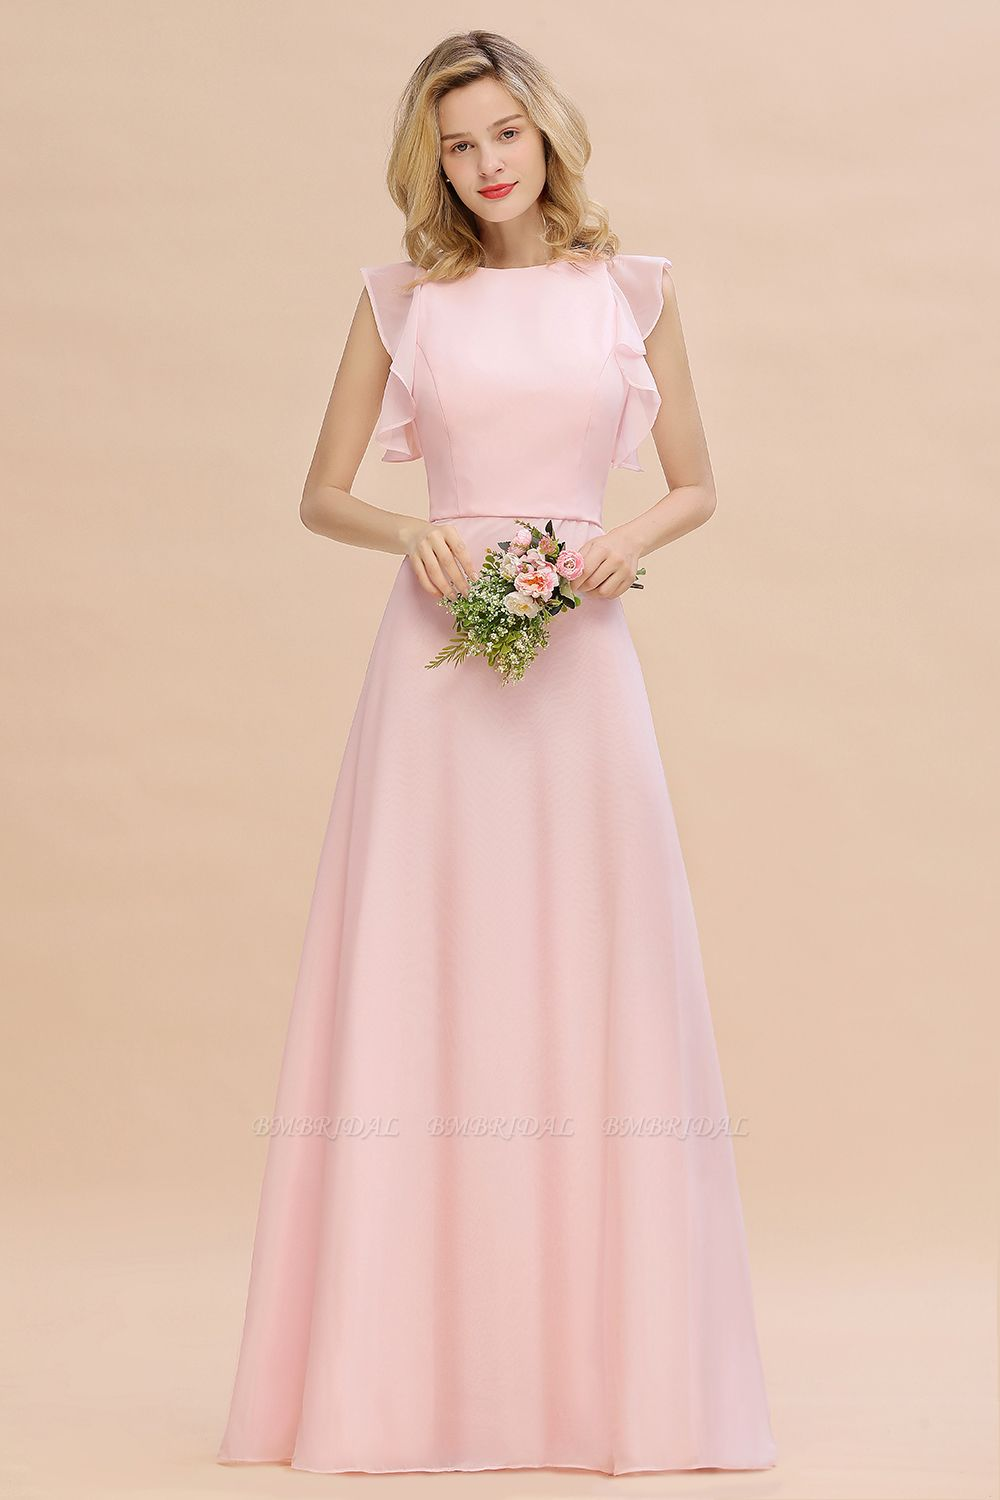 Simple Jewel Draped Sleeves Blushing Pink Bridesmaid Dress Online